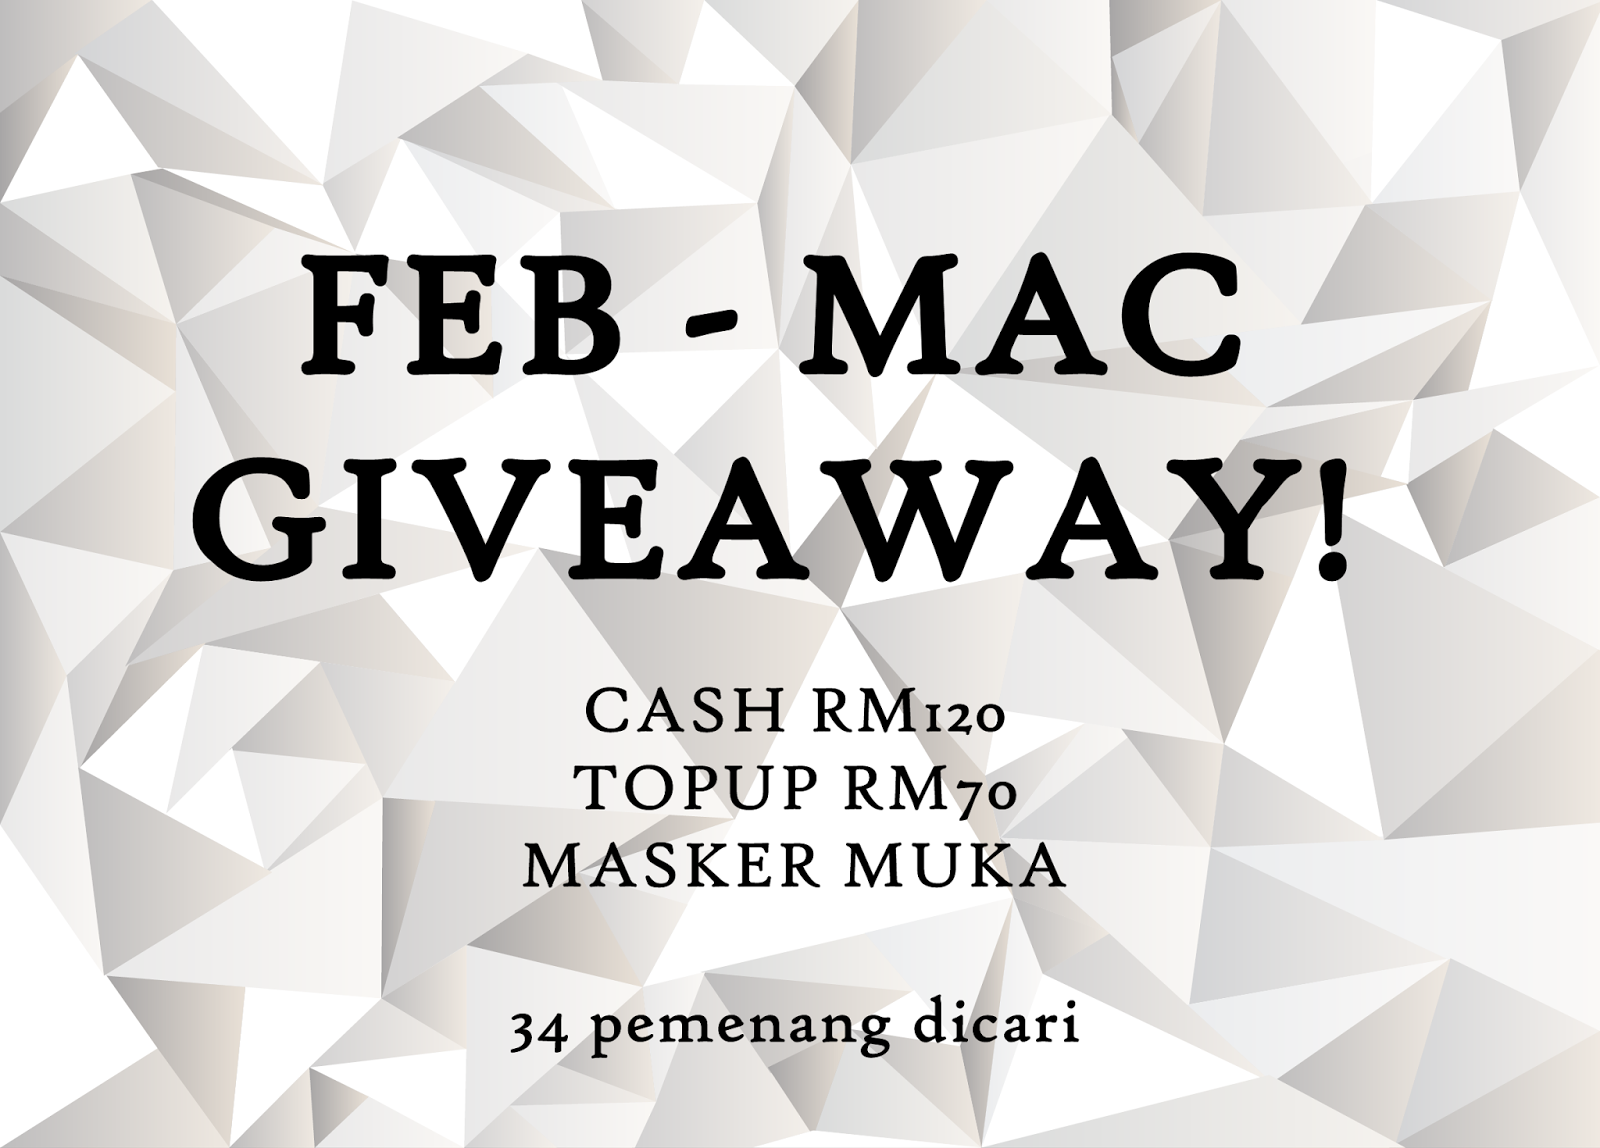 FEB-MAC GIVEAWAY!